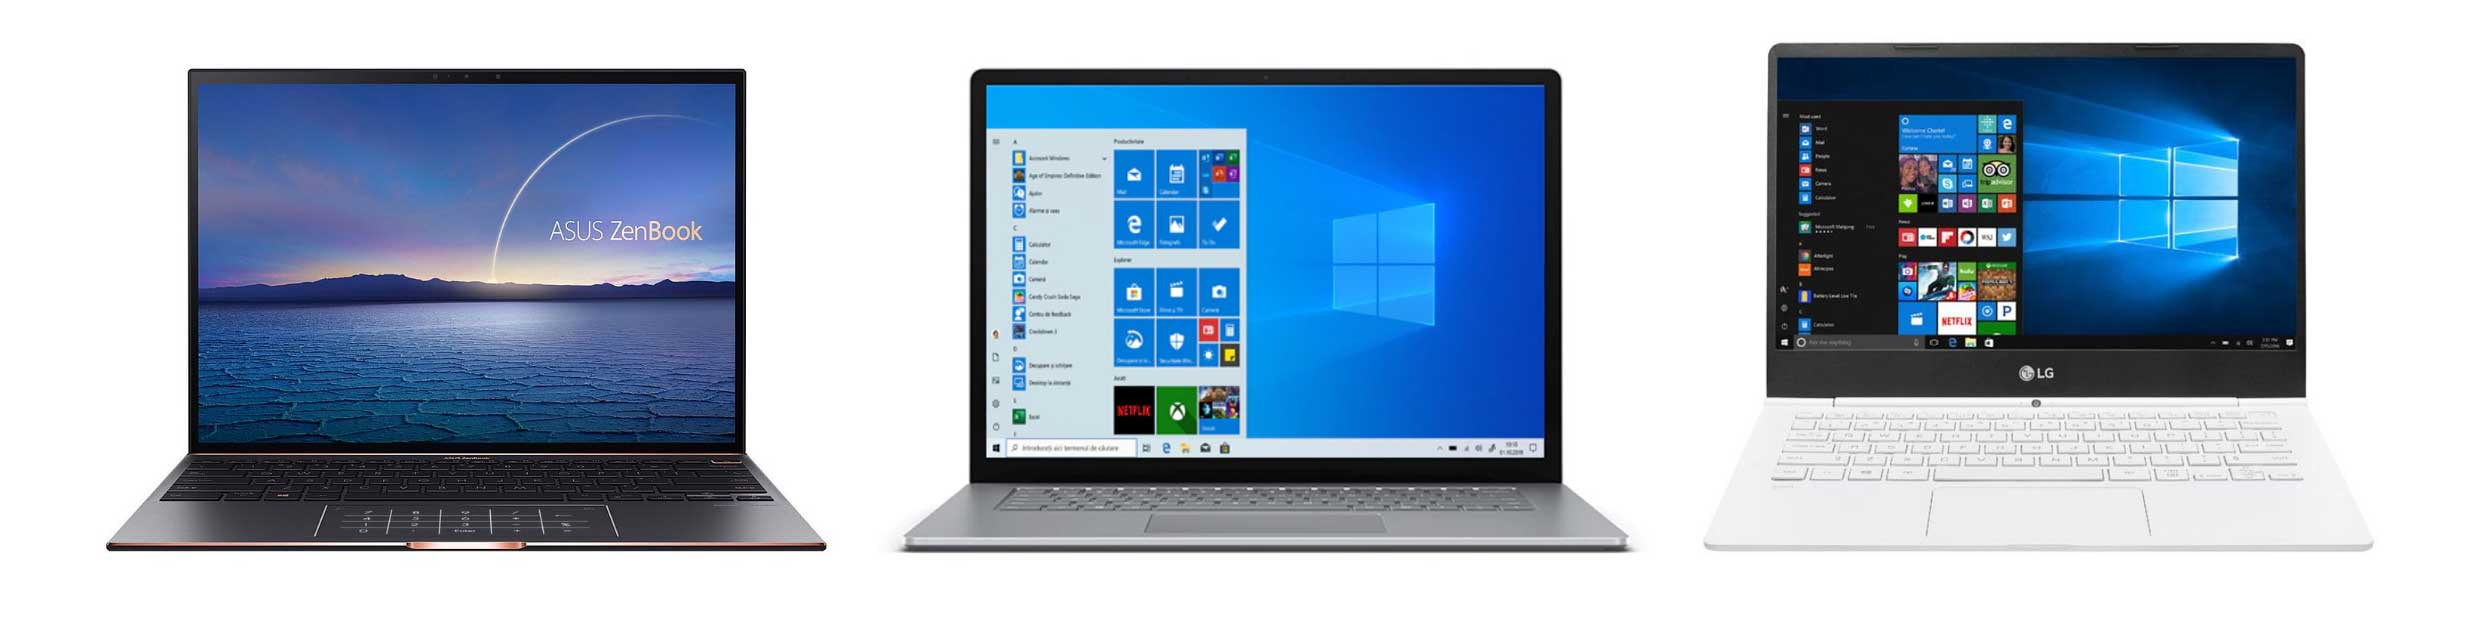 Soem of the other premium options: Asus ZenBook S13, MS Surface Laptop and LG Gram